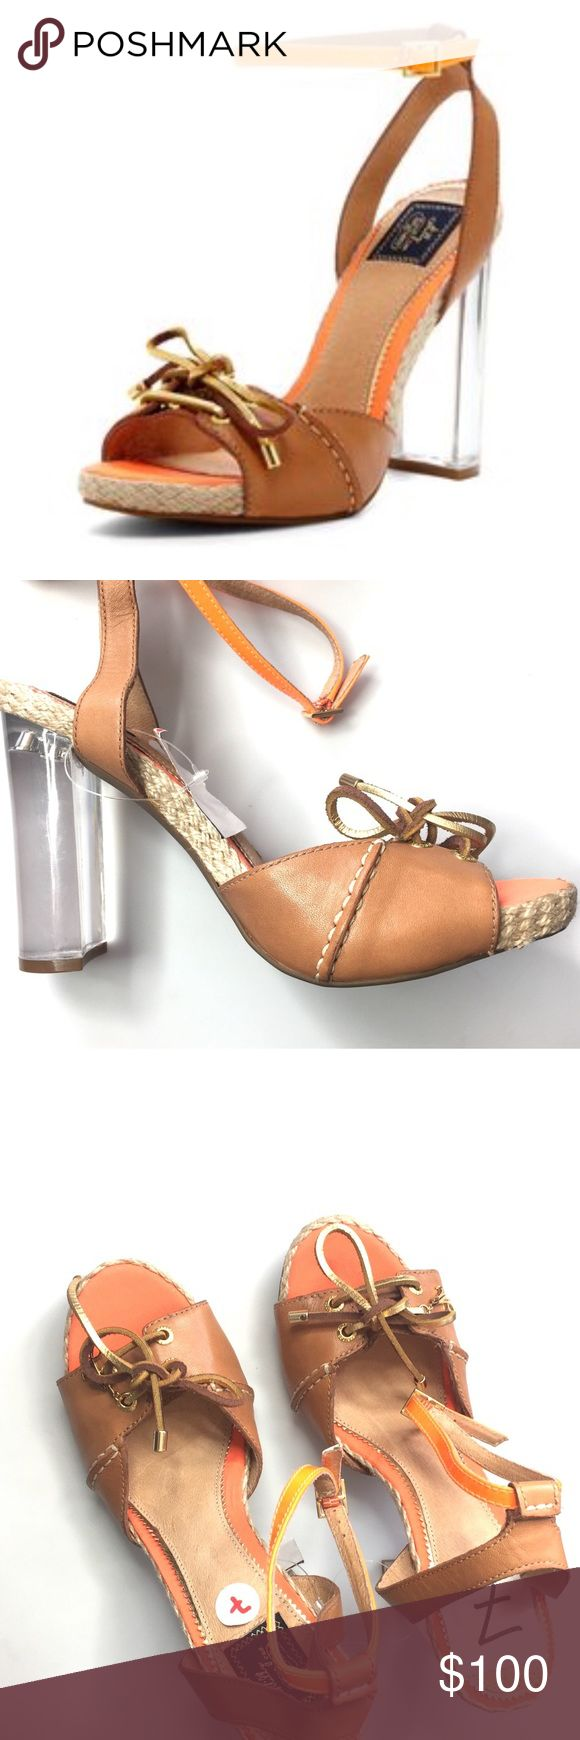 Sperry & Milly Collab - Orange & Tan Heels Gorgeous orange and tan heels by Sperry/ Milly collaboration. Heels are clear. Purchased from the costume department at Warner Brothers for Pretty Little Liars. These were alternatives and ended up never being used. There are a couple of scuffs on the back of the heel as shown in the photos. Costume department put Size sticker inside of shoe. Still brand new with tags. #9021715 Milly Shoes Heels